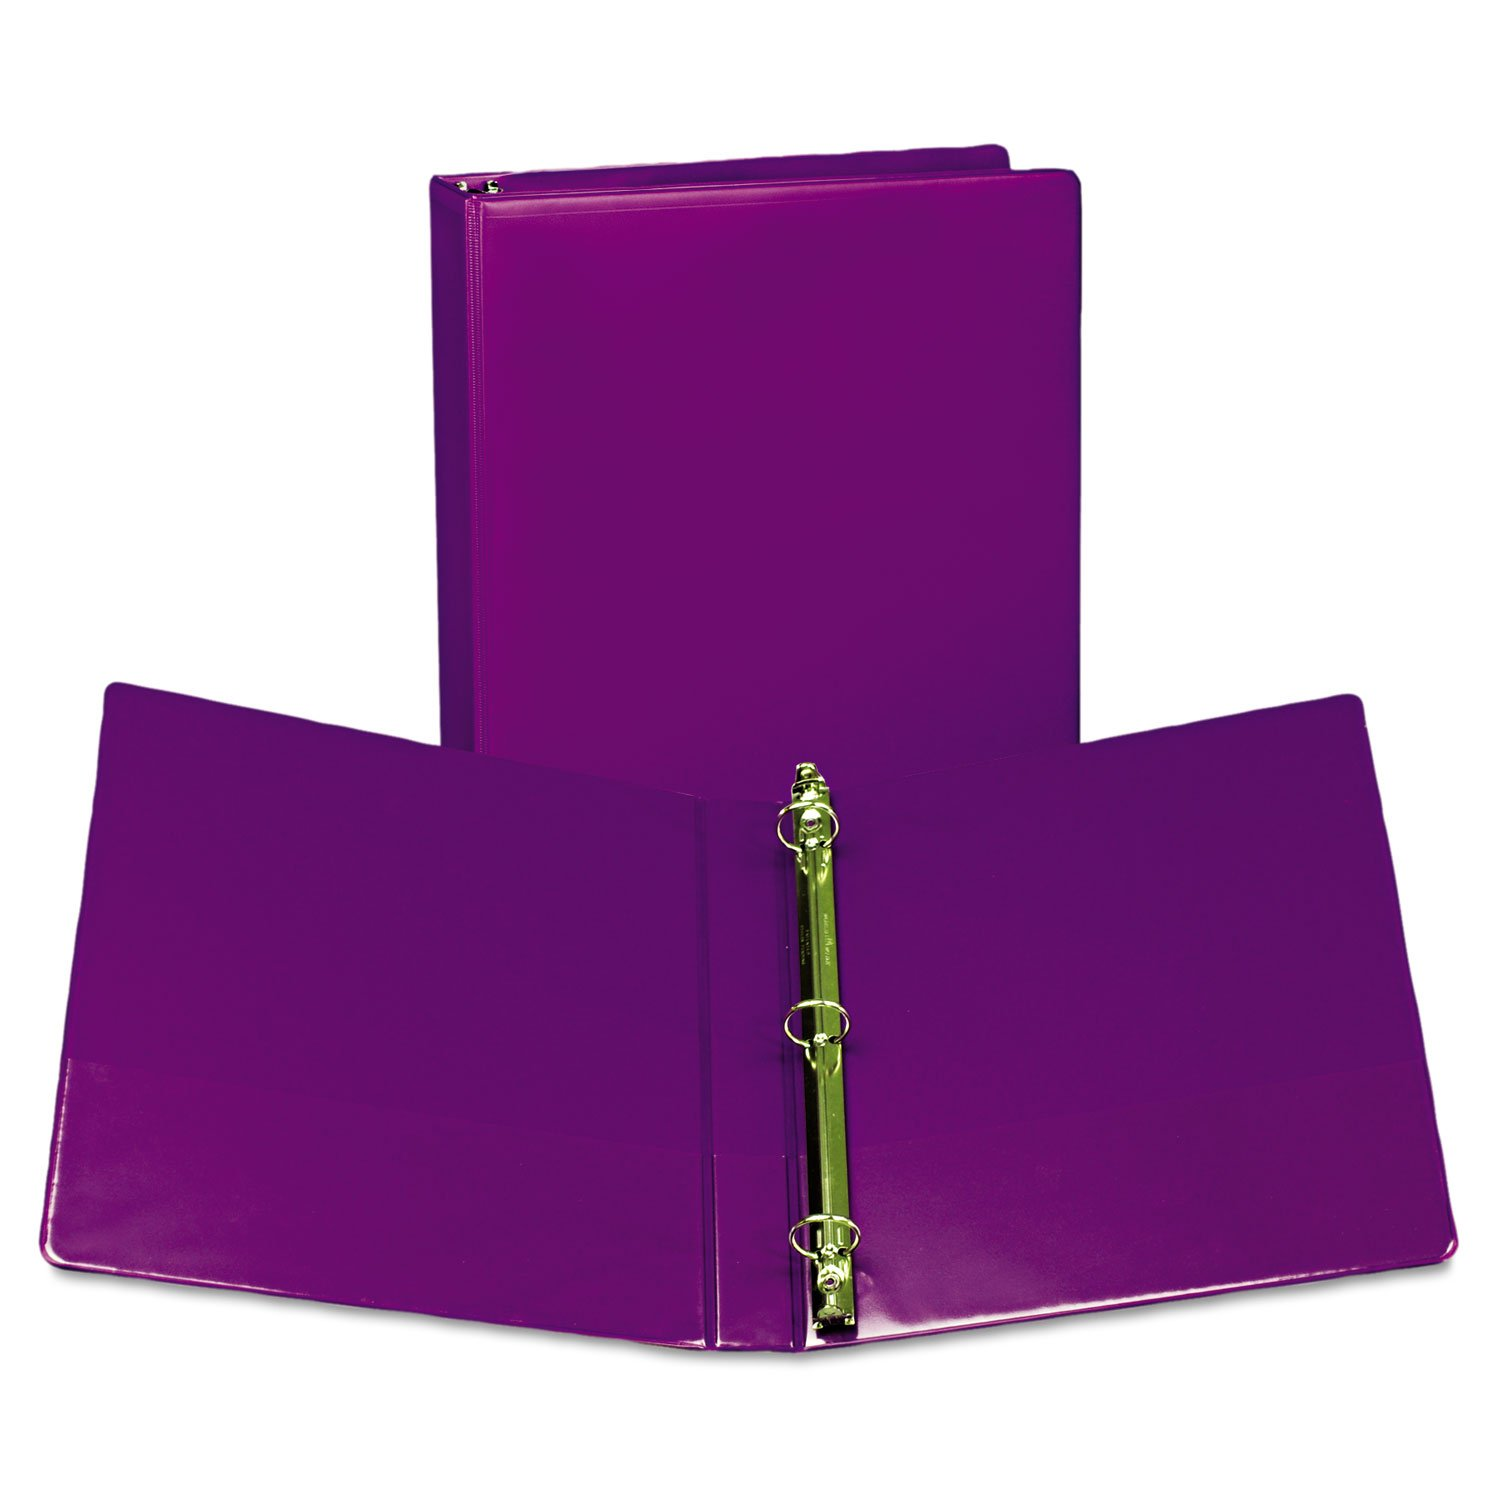 Samsill U86308 Fashion View Binder Round Ring 11 x 8-1/2 1'' Capacity Purple 2/Pack